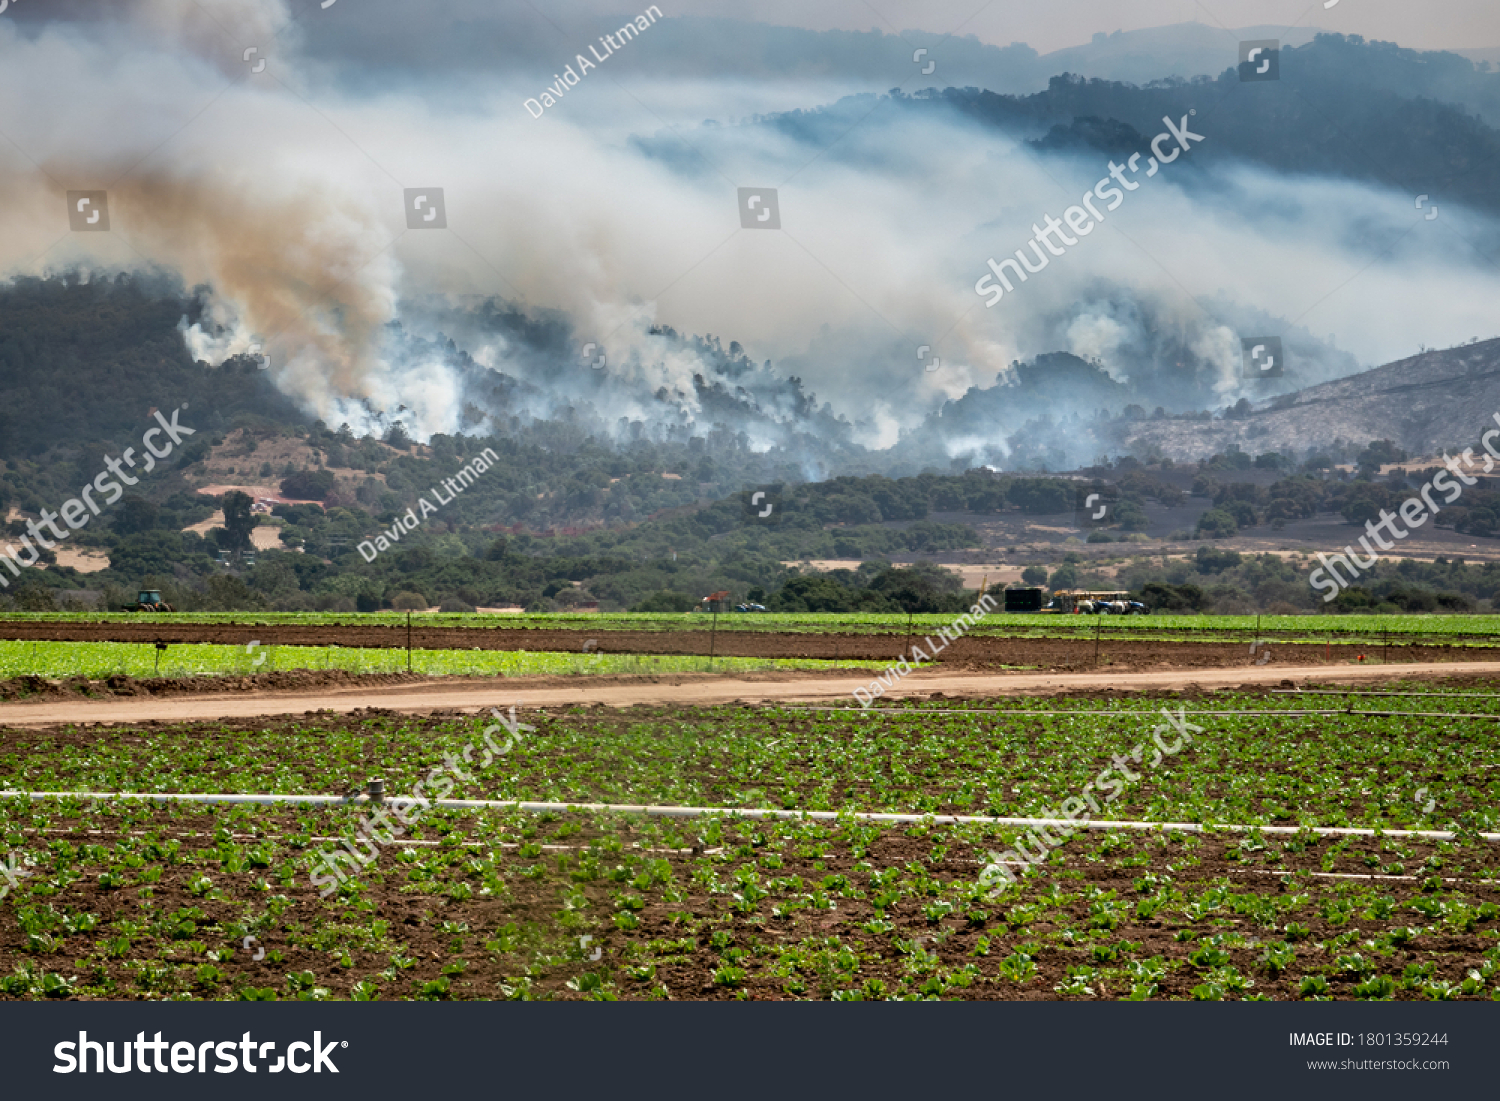 "The California ""River Fire"" in rages through the hills of Salinas, in Monterey County, with agricultural fields seen in the foreground."